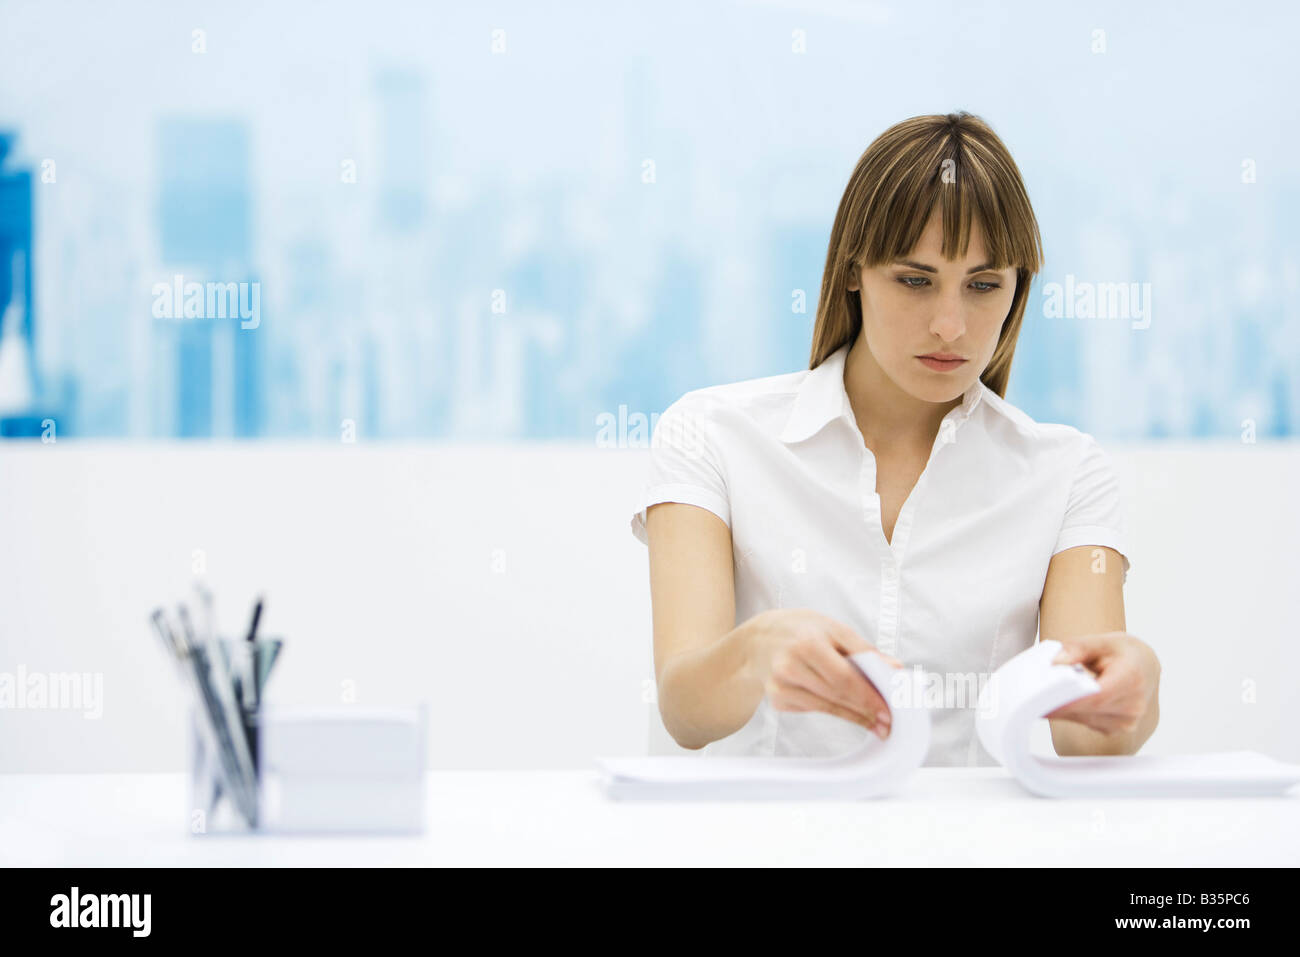 Woman shuffling two stacks of paper together, sitting at desk - Stock Image